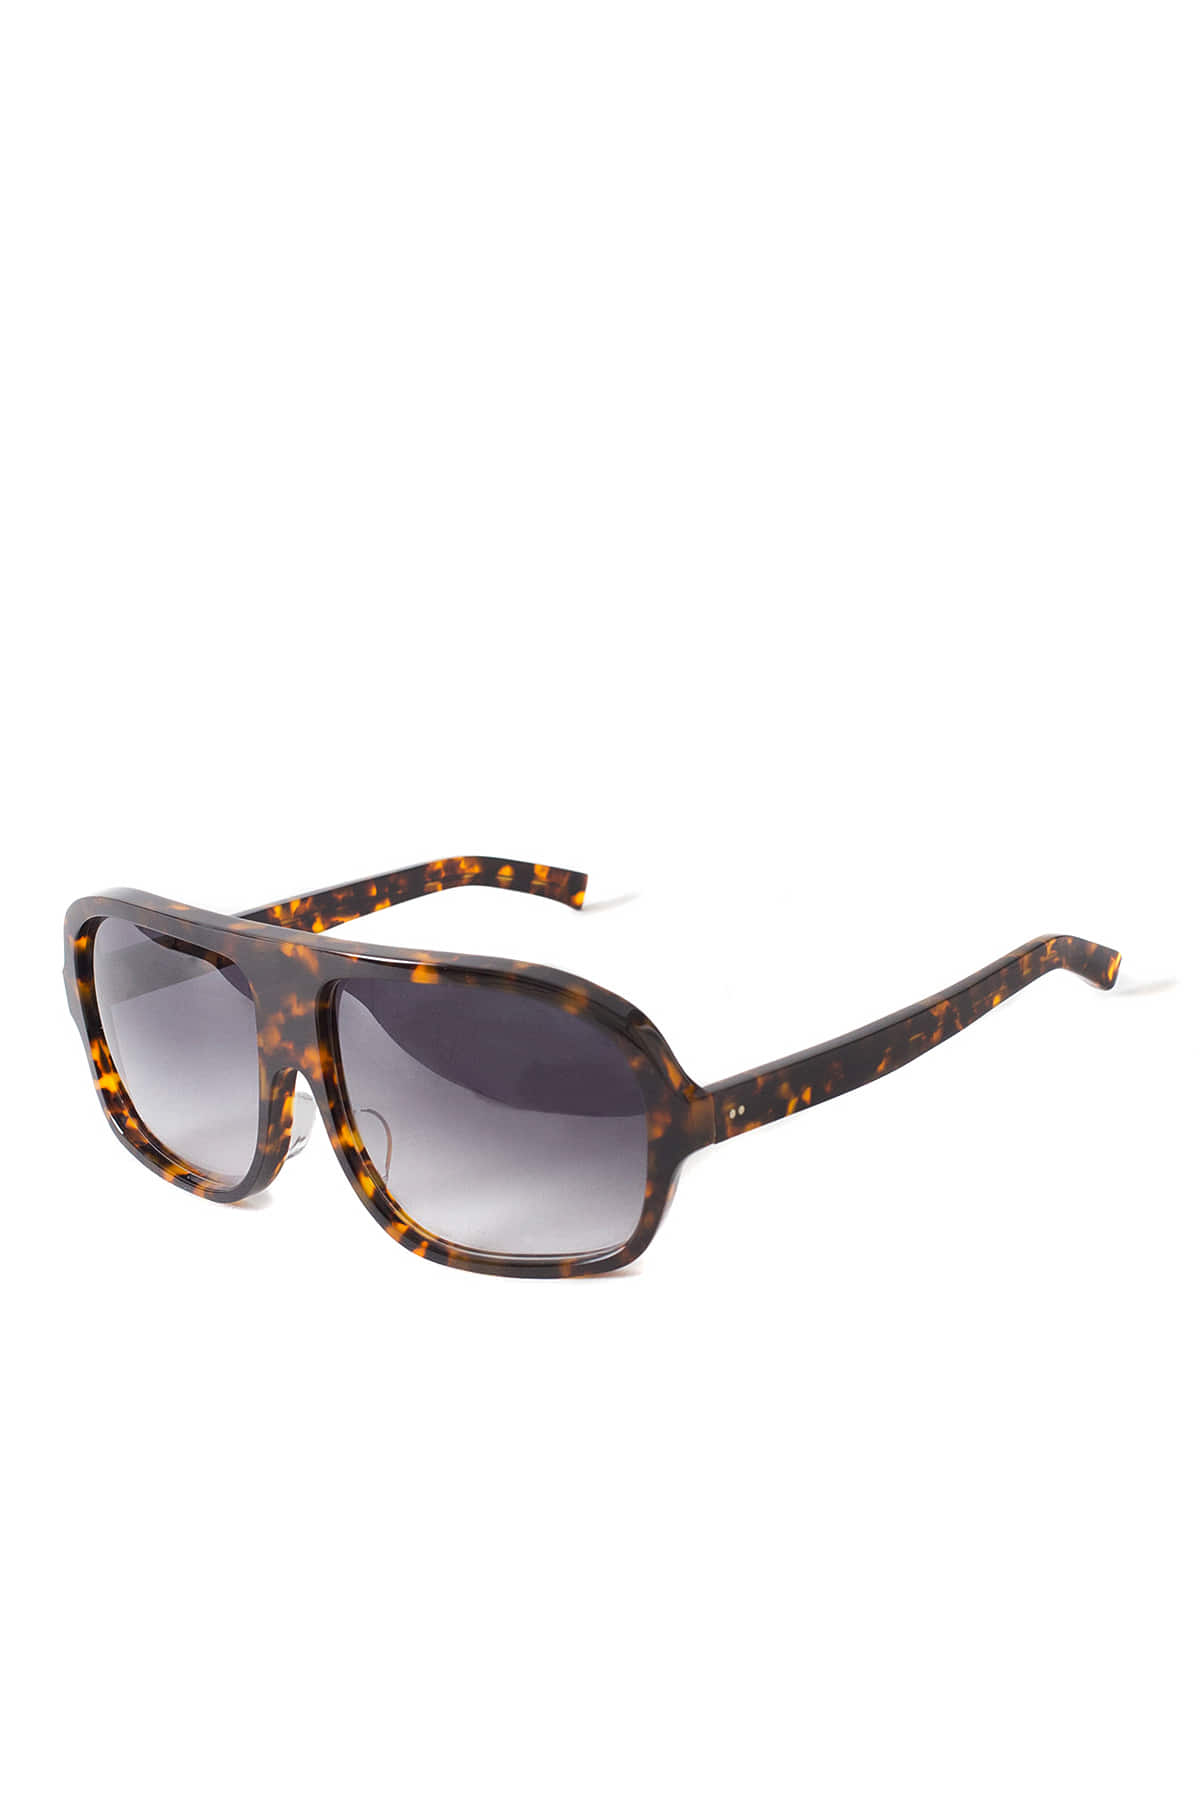 JOHN LAWRENCE SULLIVAN : Sunglasses (Brown)